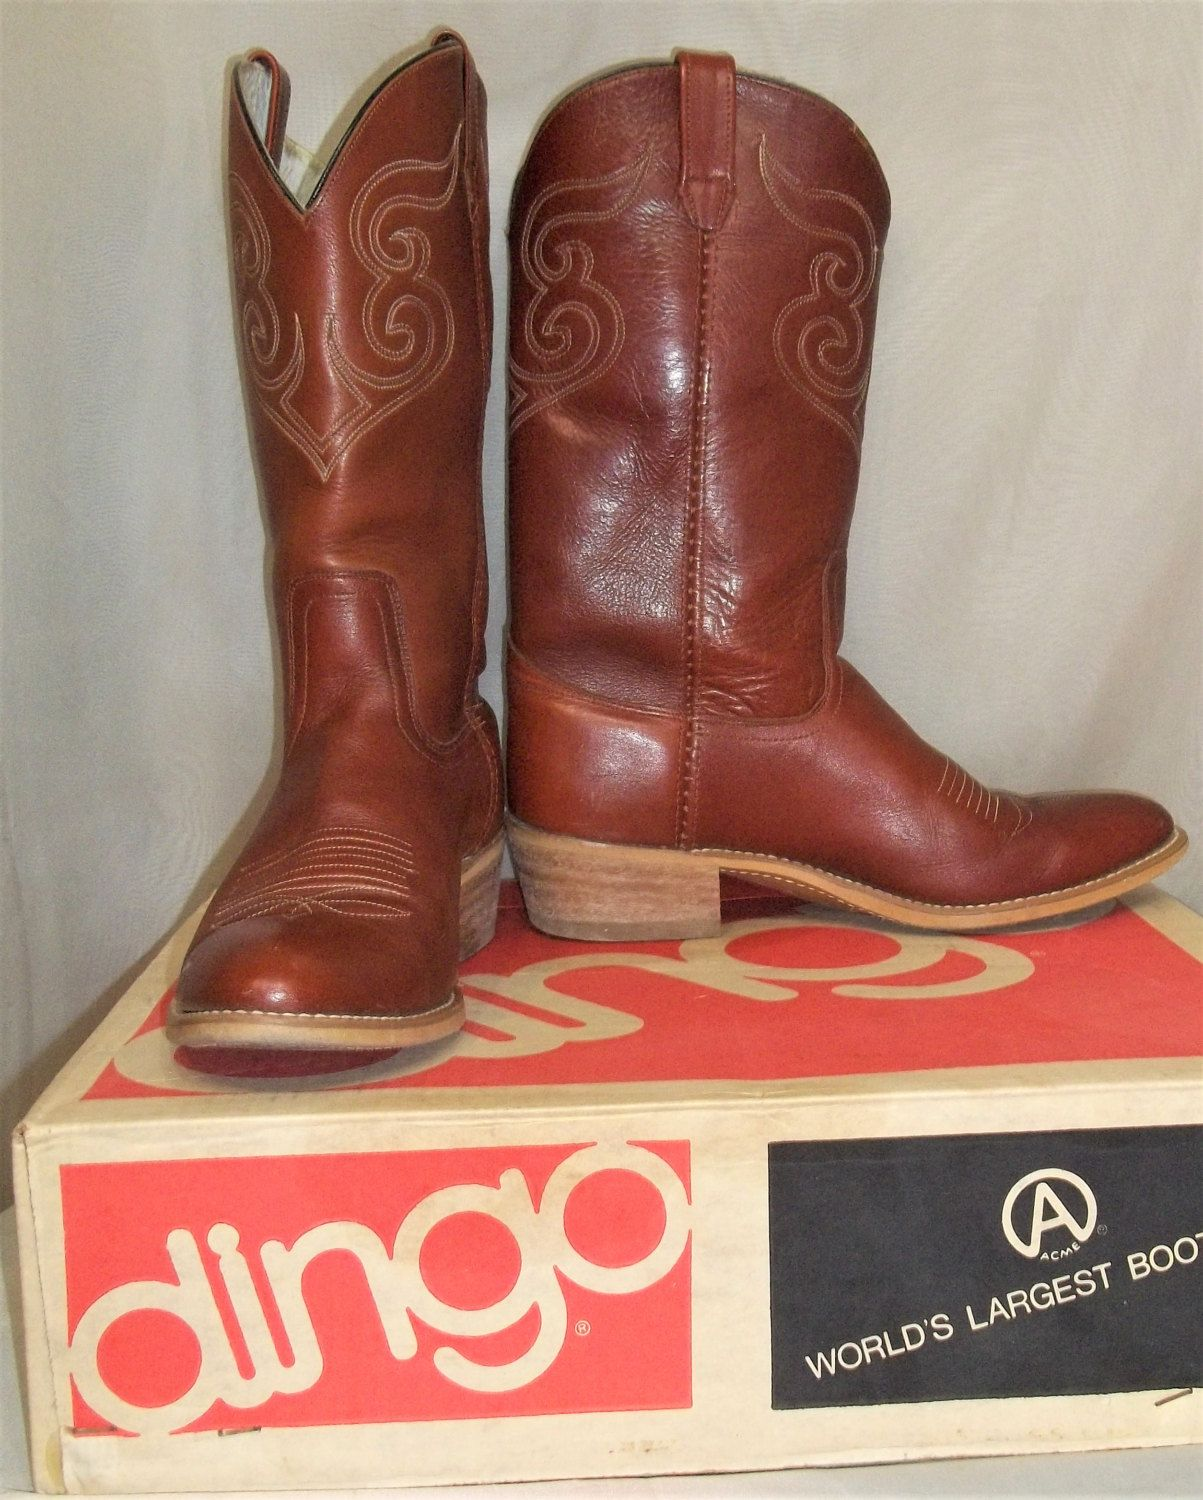 c88ae5c8817 Vintage Acme/Dingo Men's Cowboy Western Leather Boots Size 10 1/2 D ...